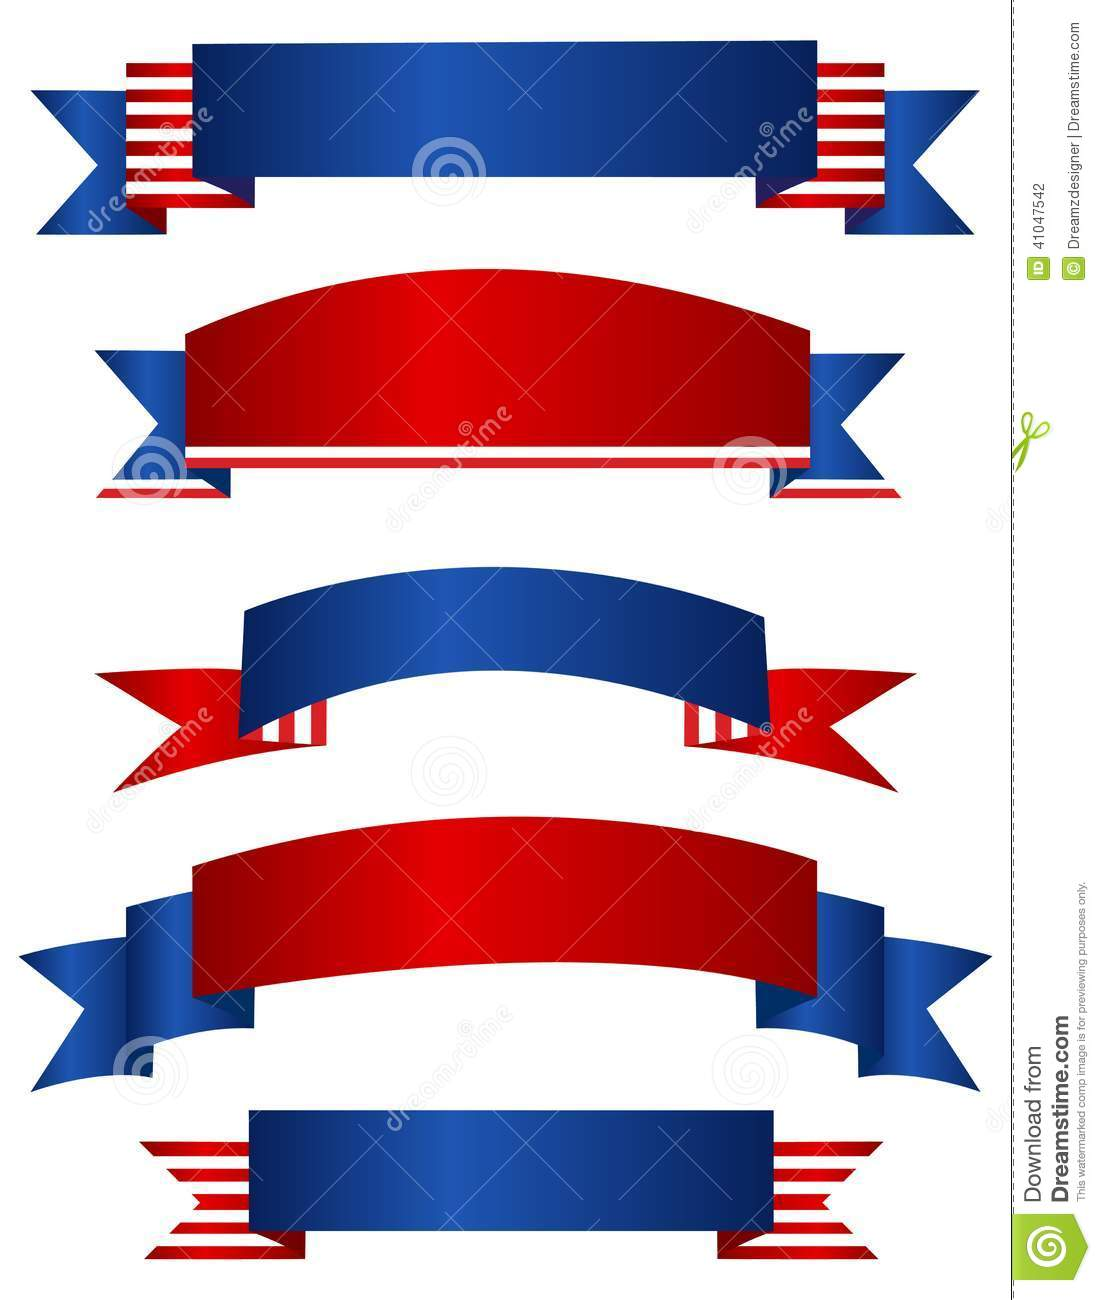 Clipart Stars And Stripes.